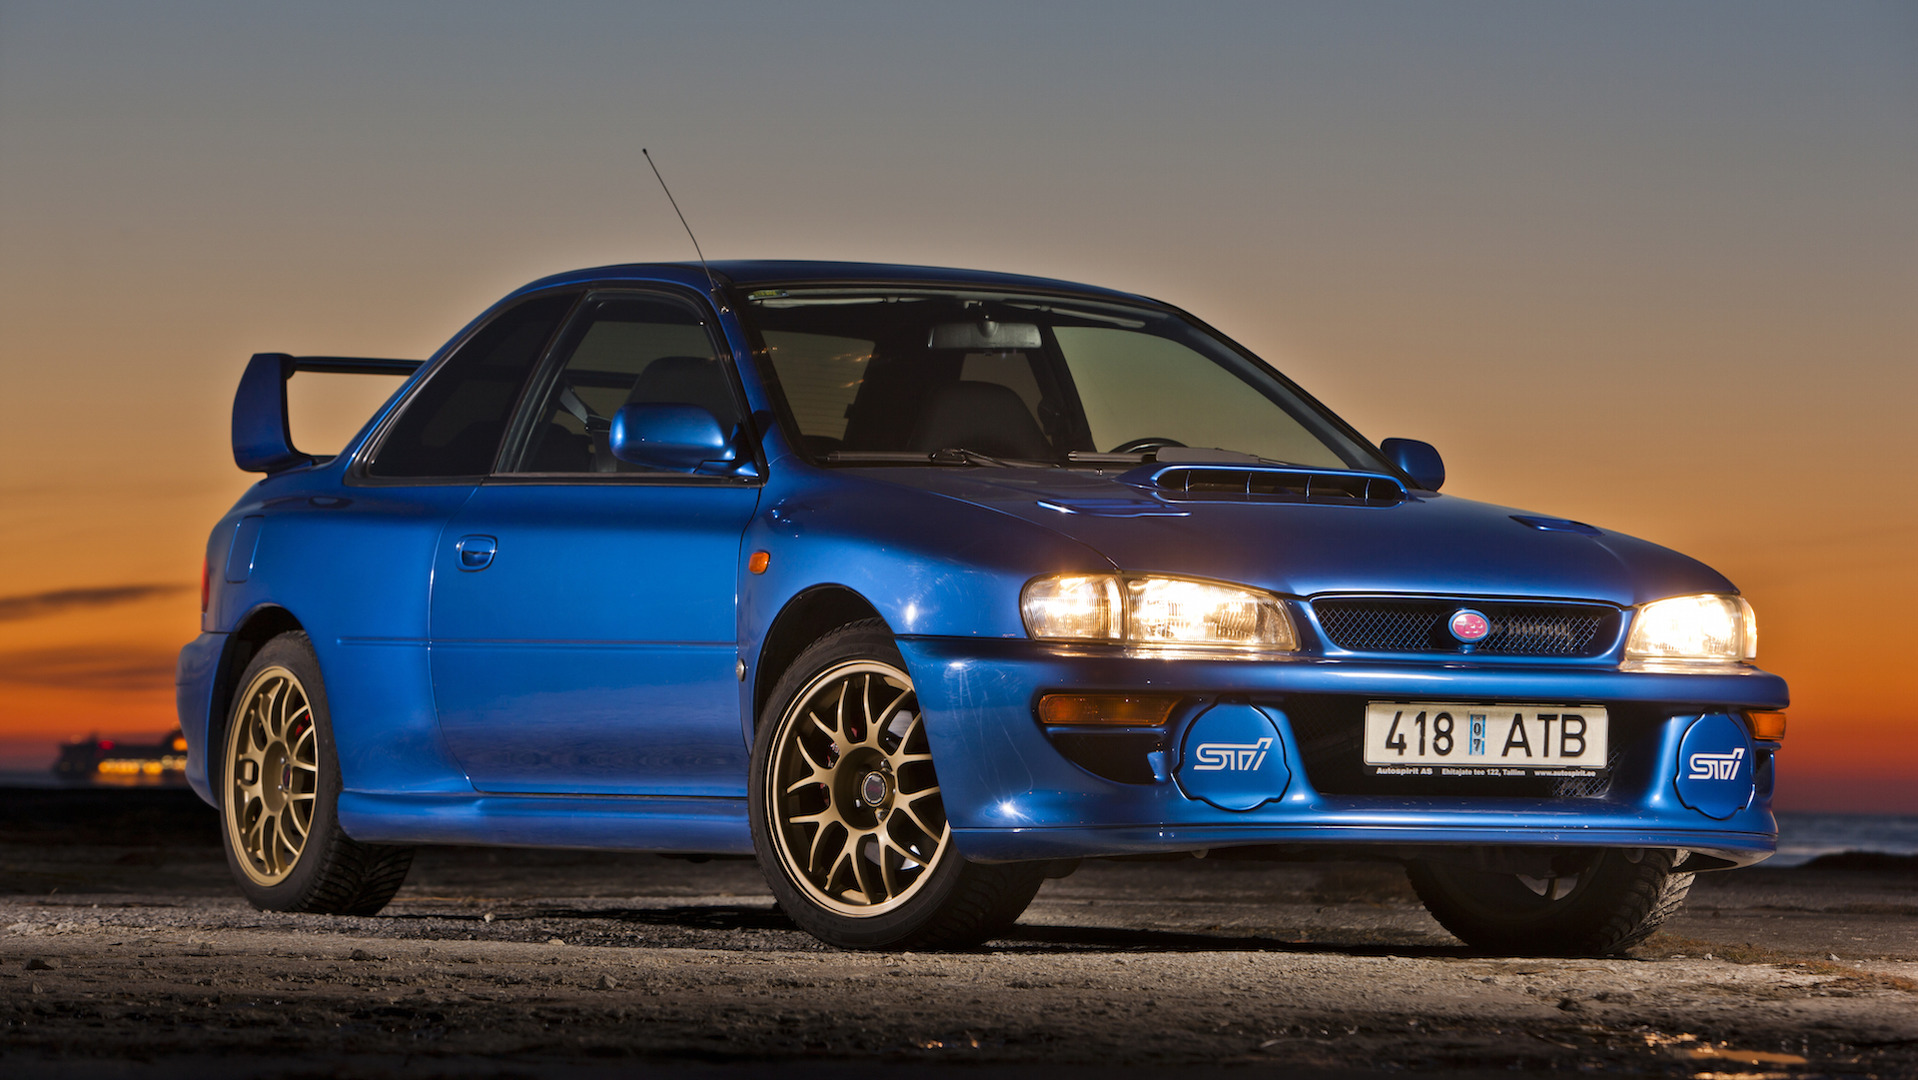 A look back at the auction of this Holy Grail Subaru ...